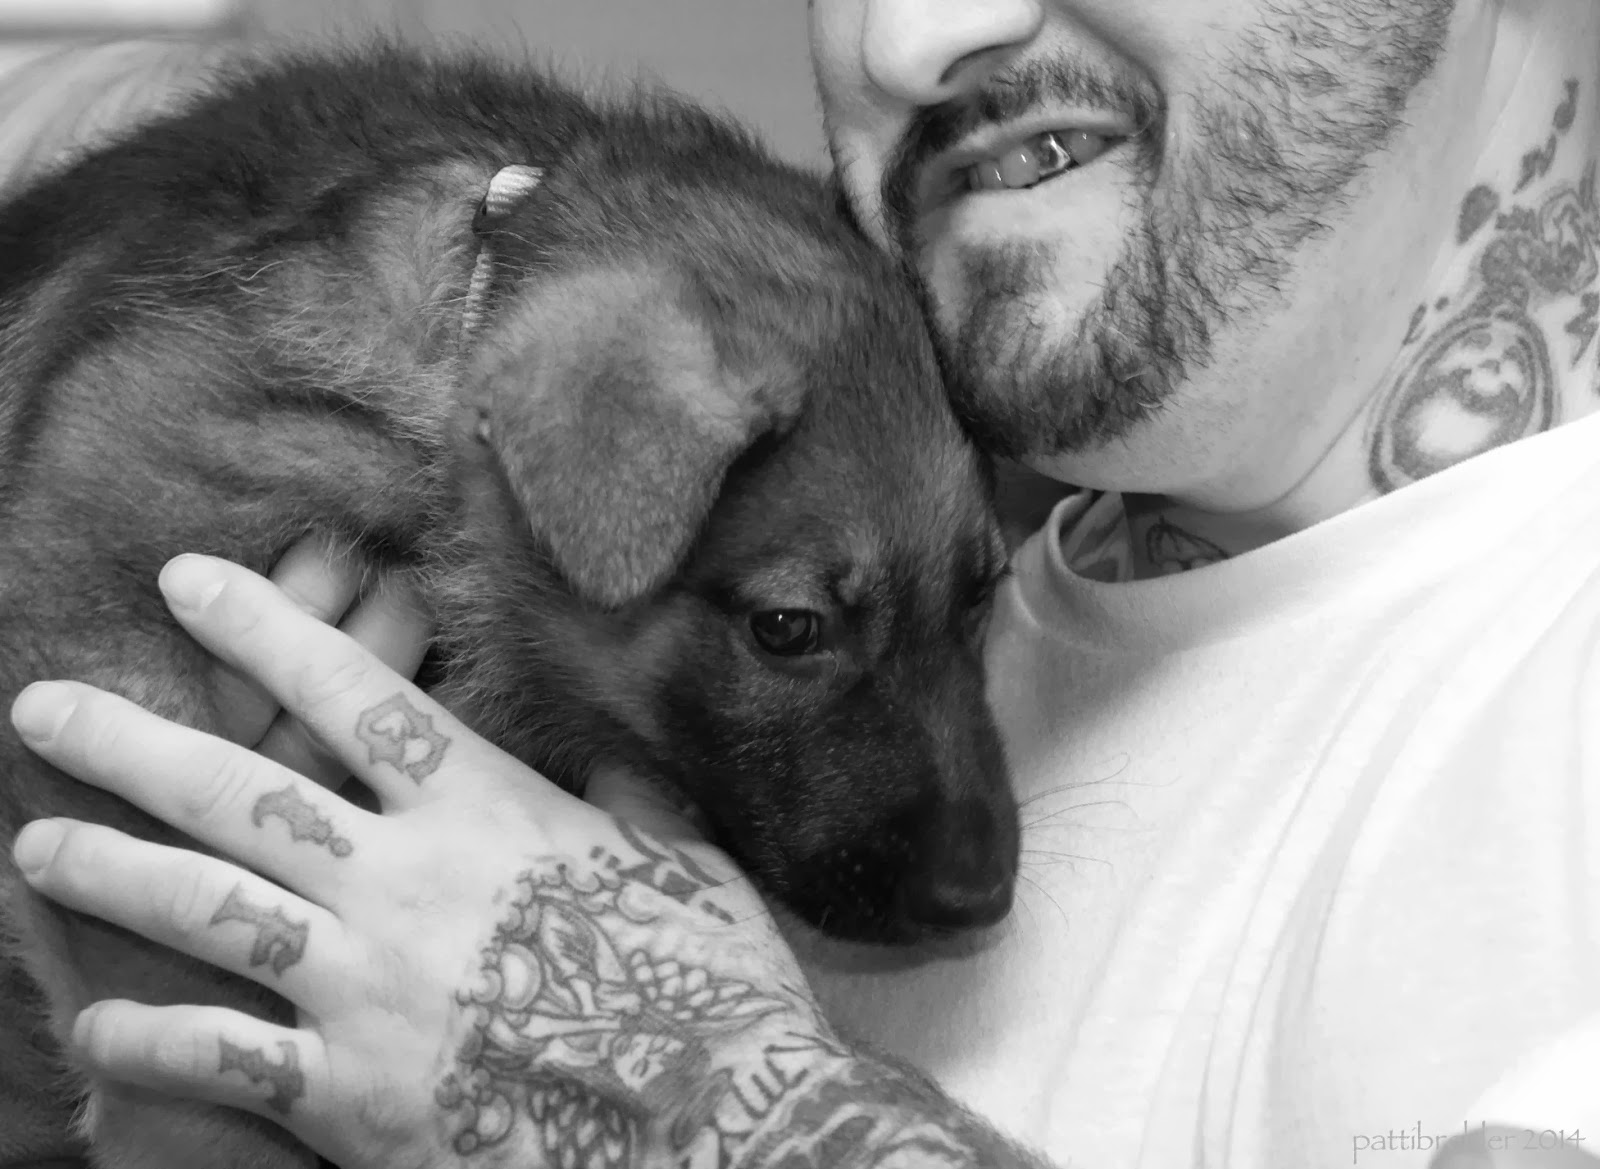 A close up shot of a grerman shepherd puppy being held in the arms of a tattooed man. The man is wearing a white t-shirt and you can only see the bottom half of his face. His neck has tattoos also.